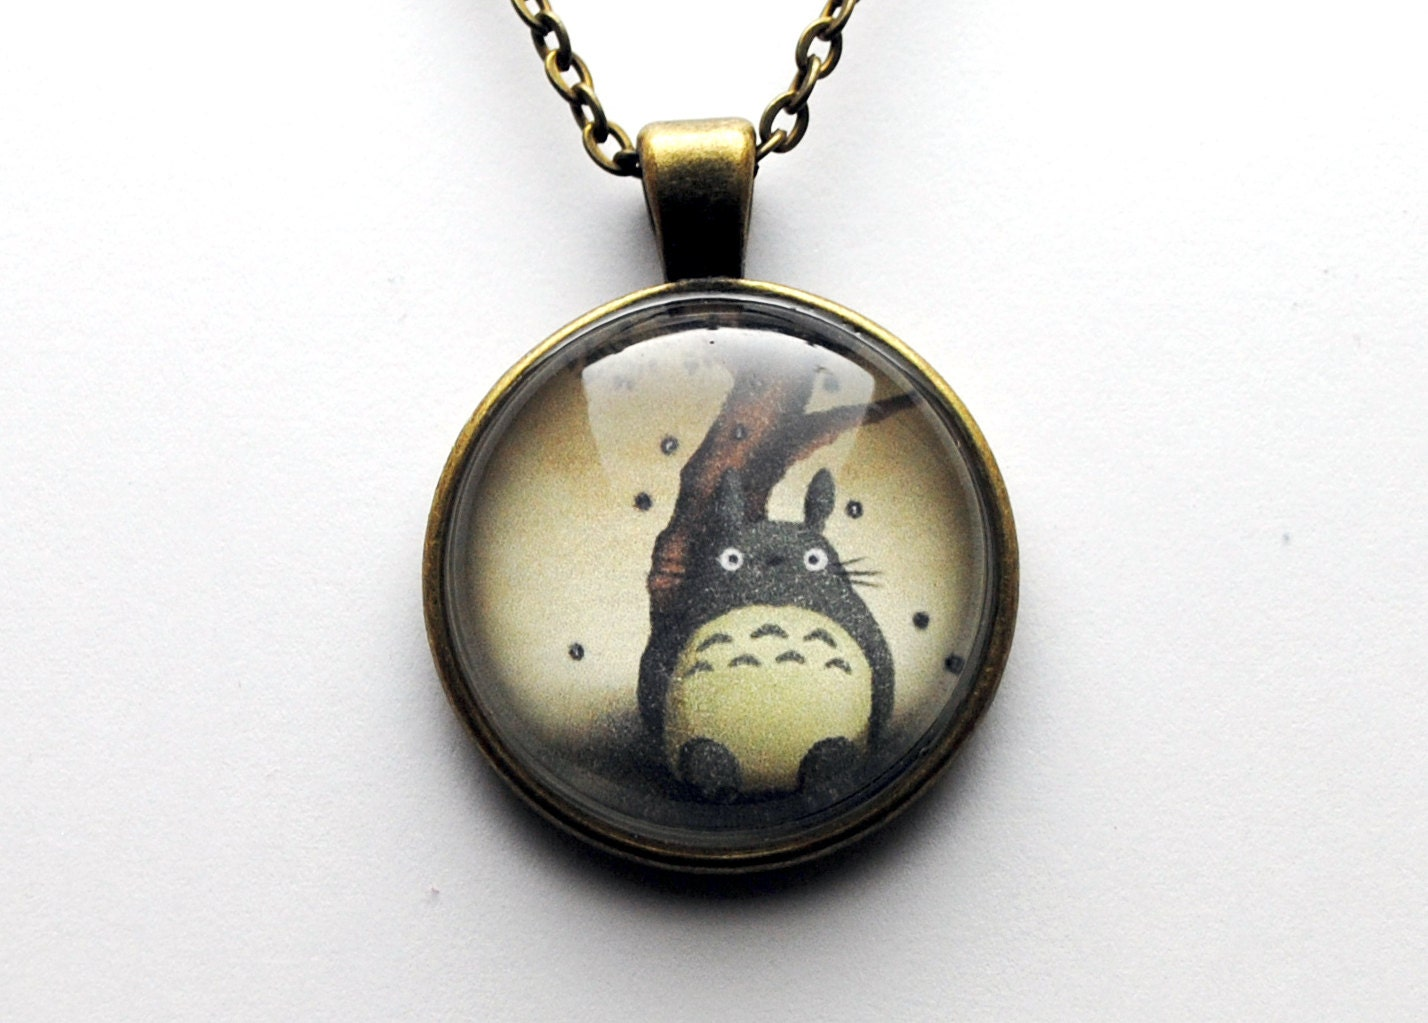 Totoro Glass Dome Necklace in Antique Bronze - NerdyTreats